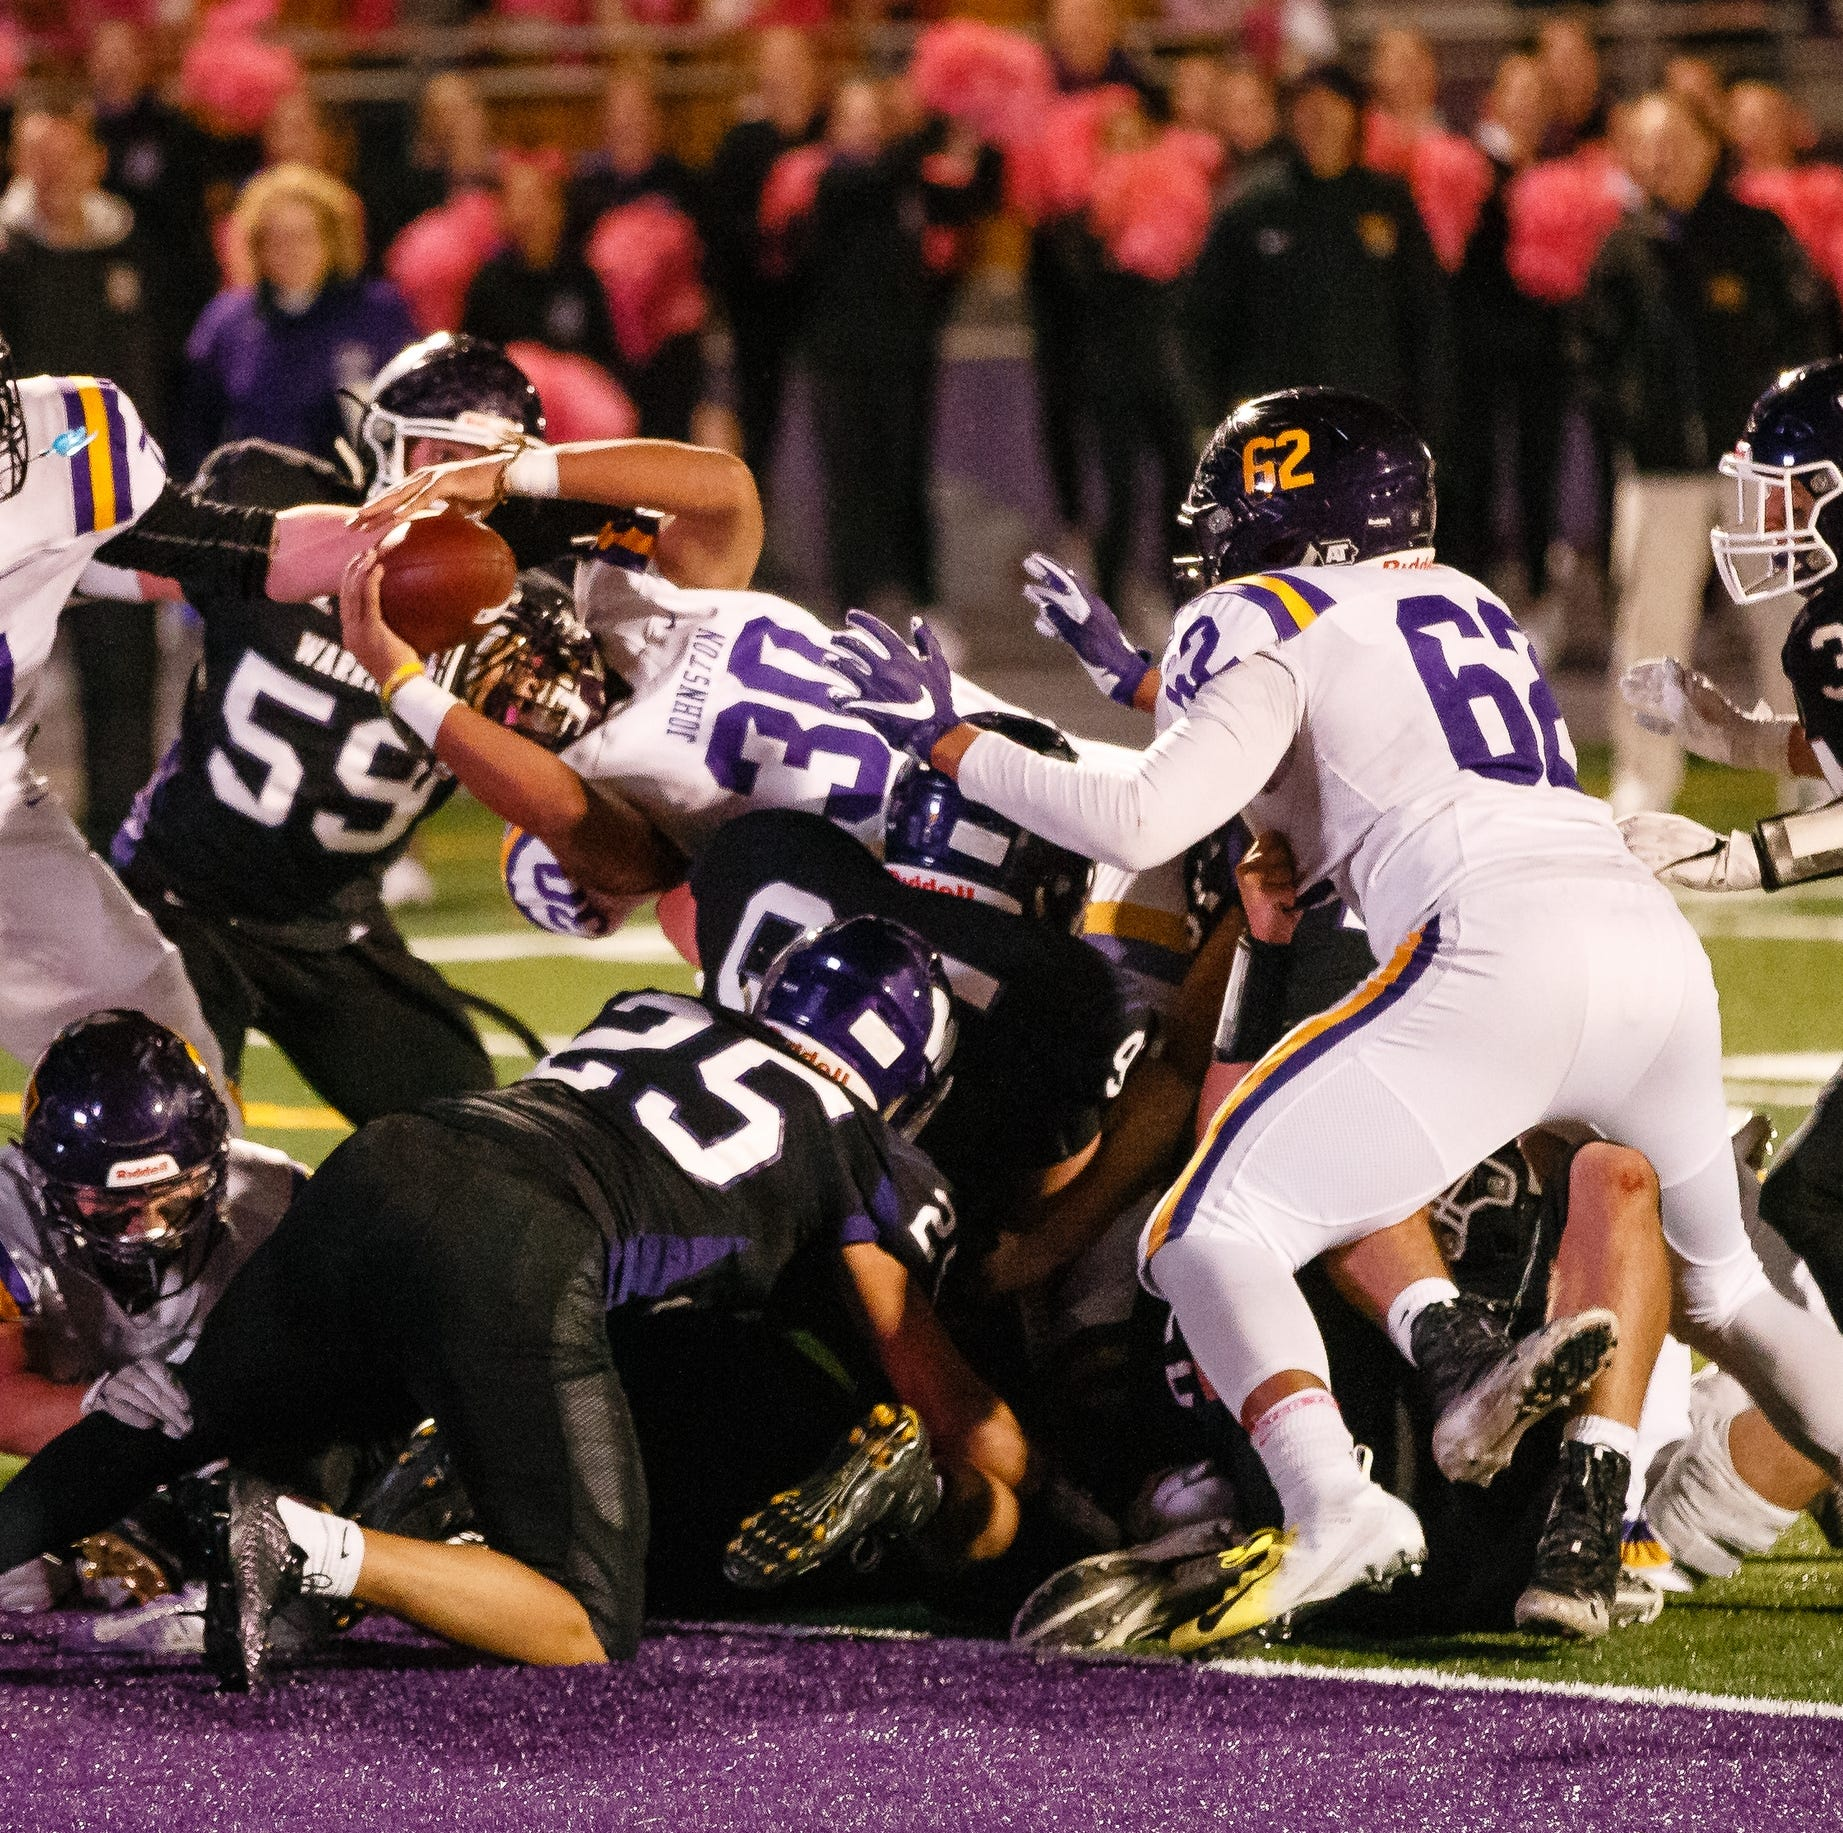 Des Moines Register's High School Football Rankings: Final poll ahead of 2018 playoffs now set